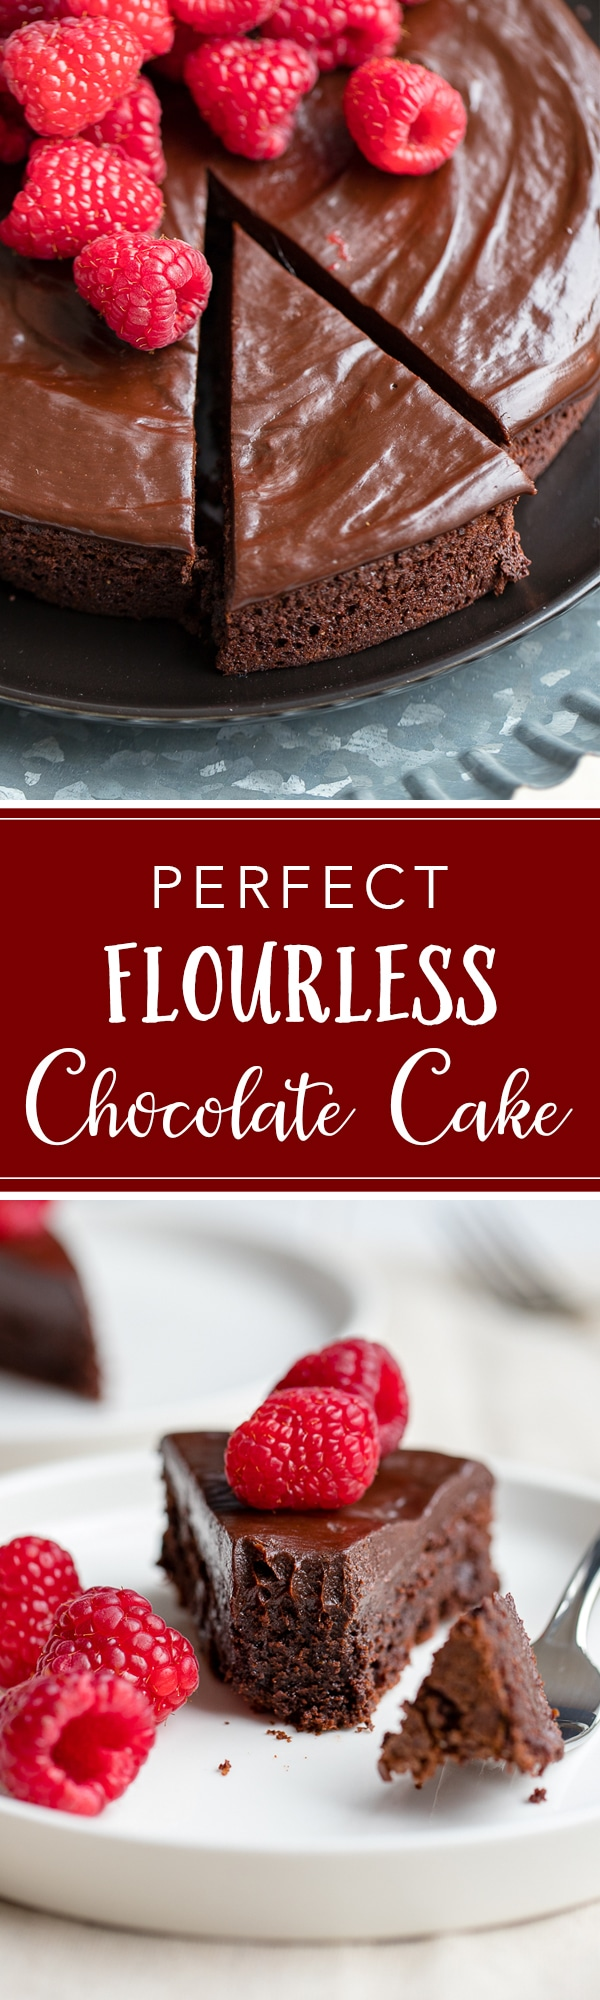 A fudgy, rich chocolate cake that is naturally gluten-free. Make this by hand in one bowl, then top with the easiest chocolate ganache (just chocolate and cream!) and fresh fruit for an impressive party dessert! #chocolatecake #glutenfree #glutenfreedessert #flourless